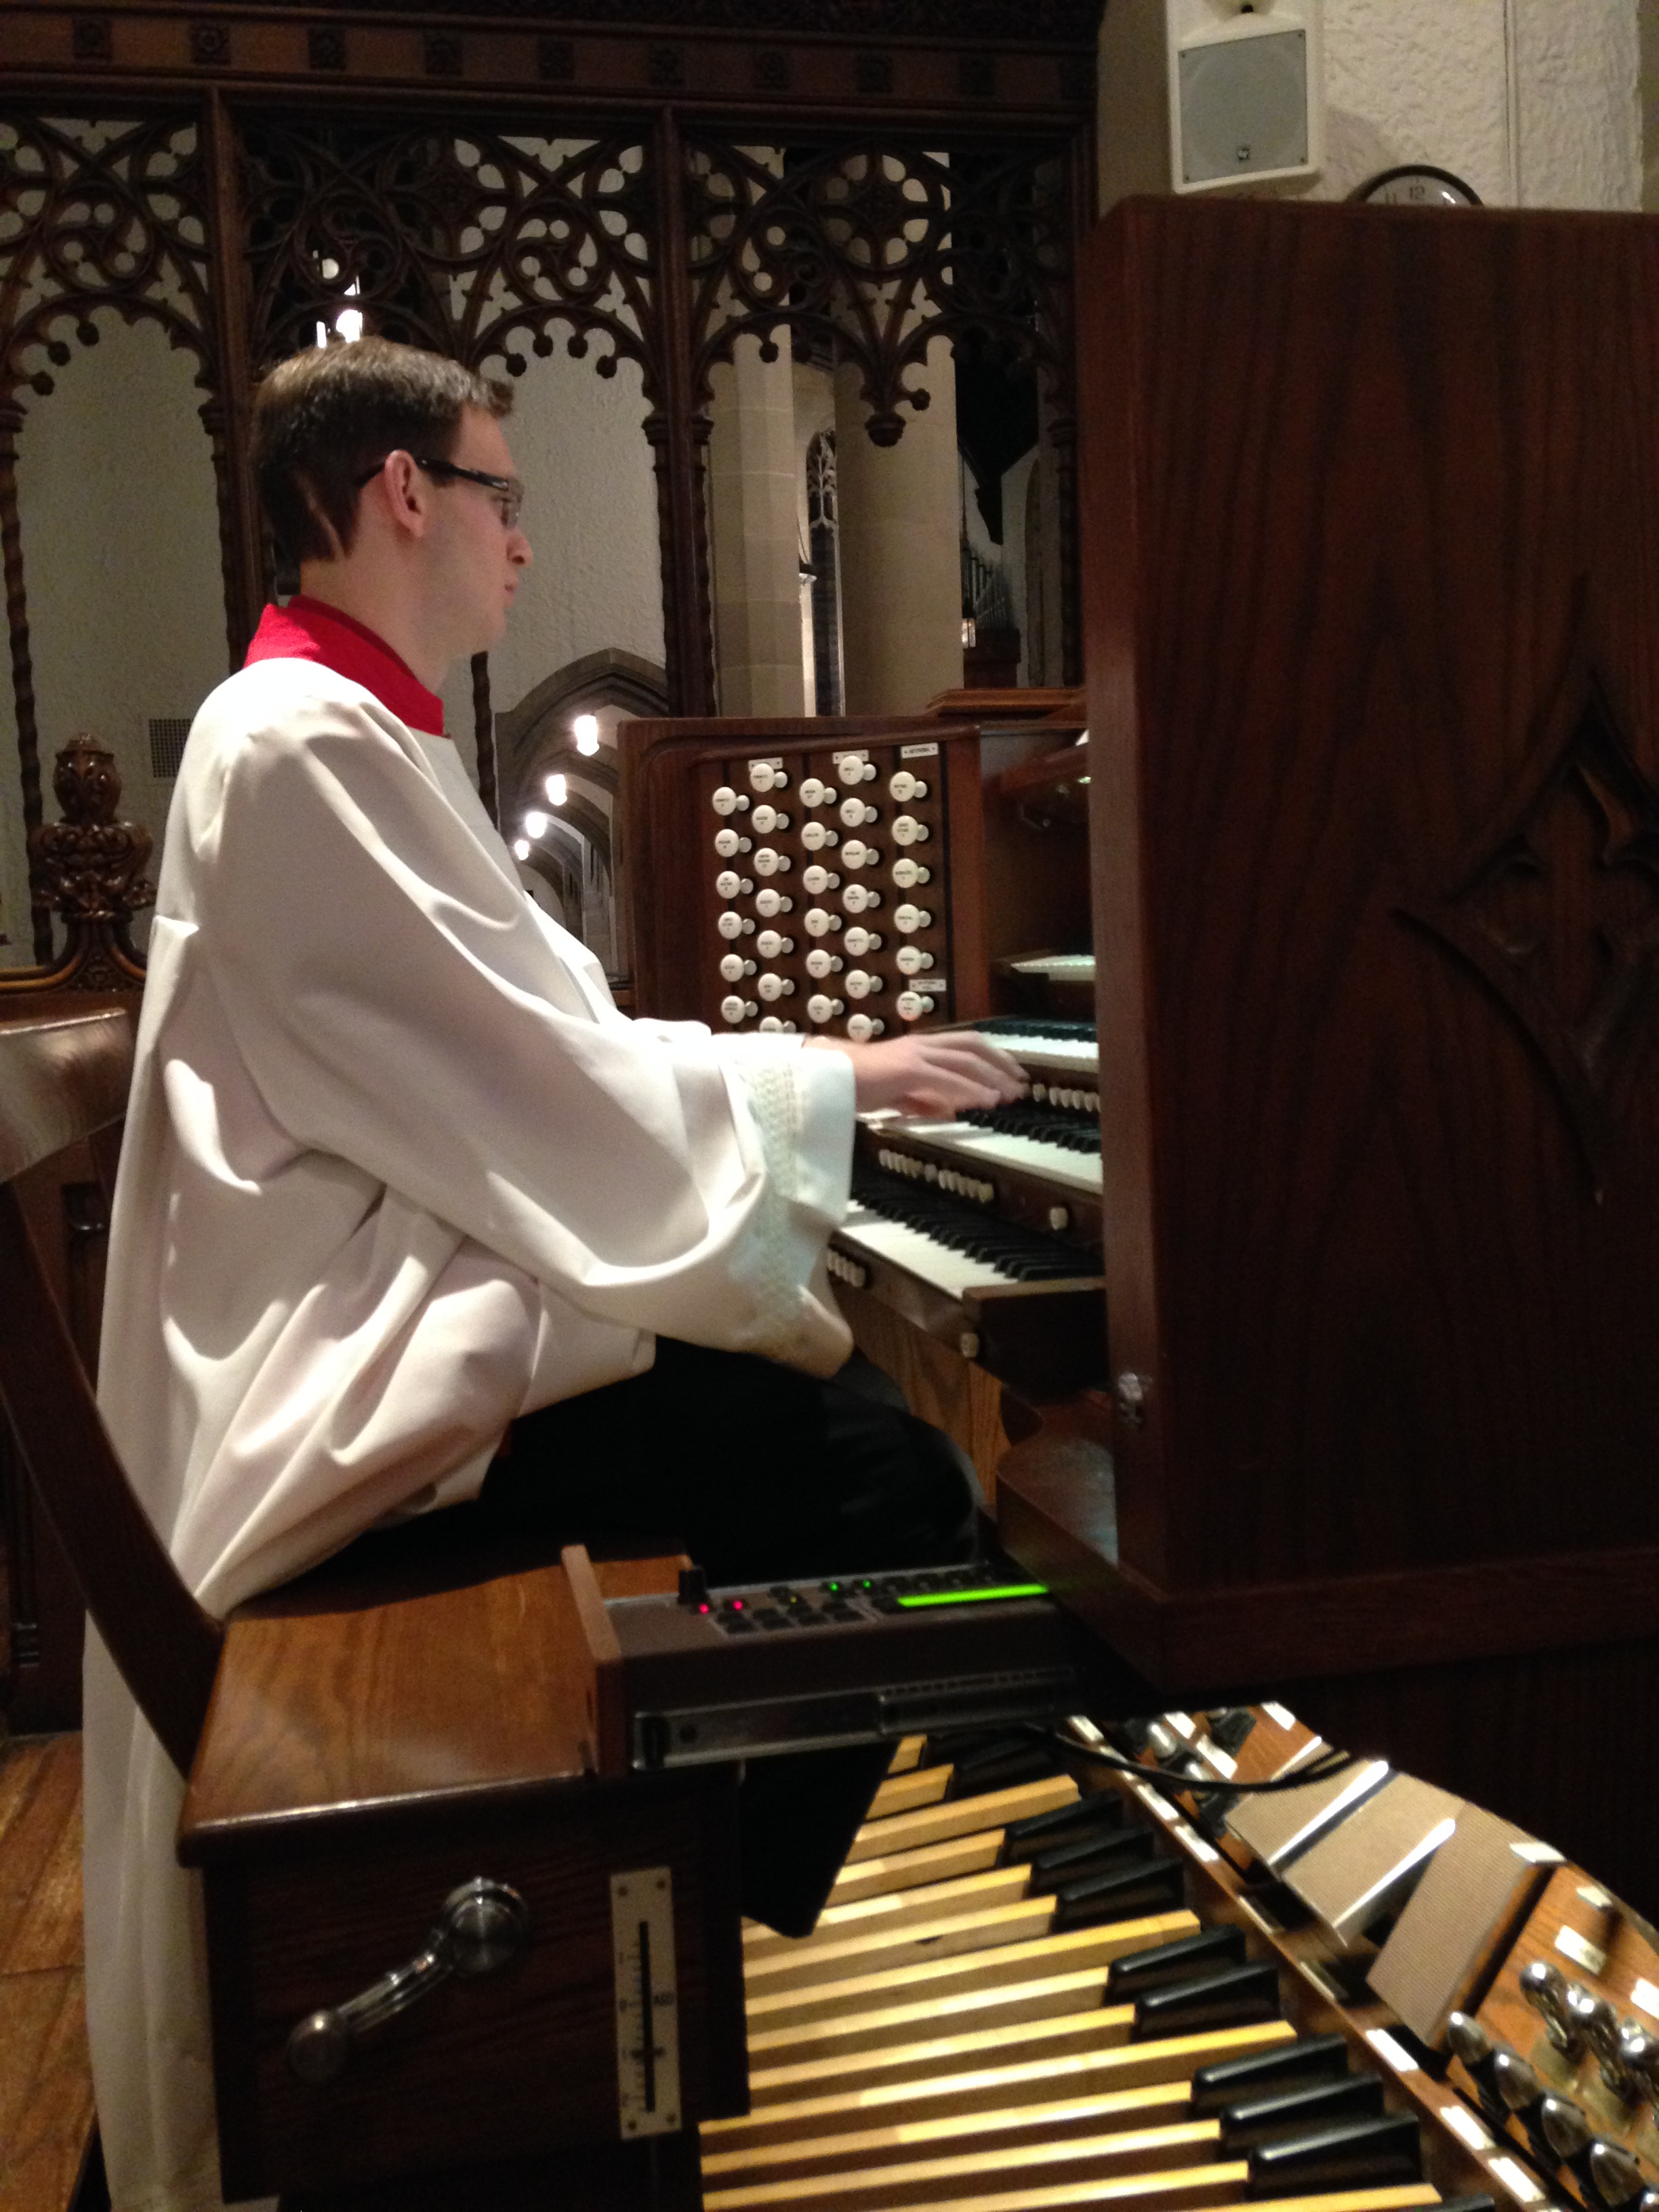 Chad at Organ